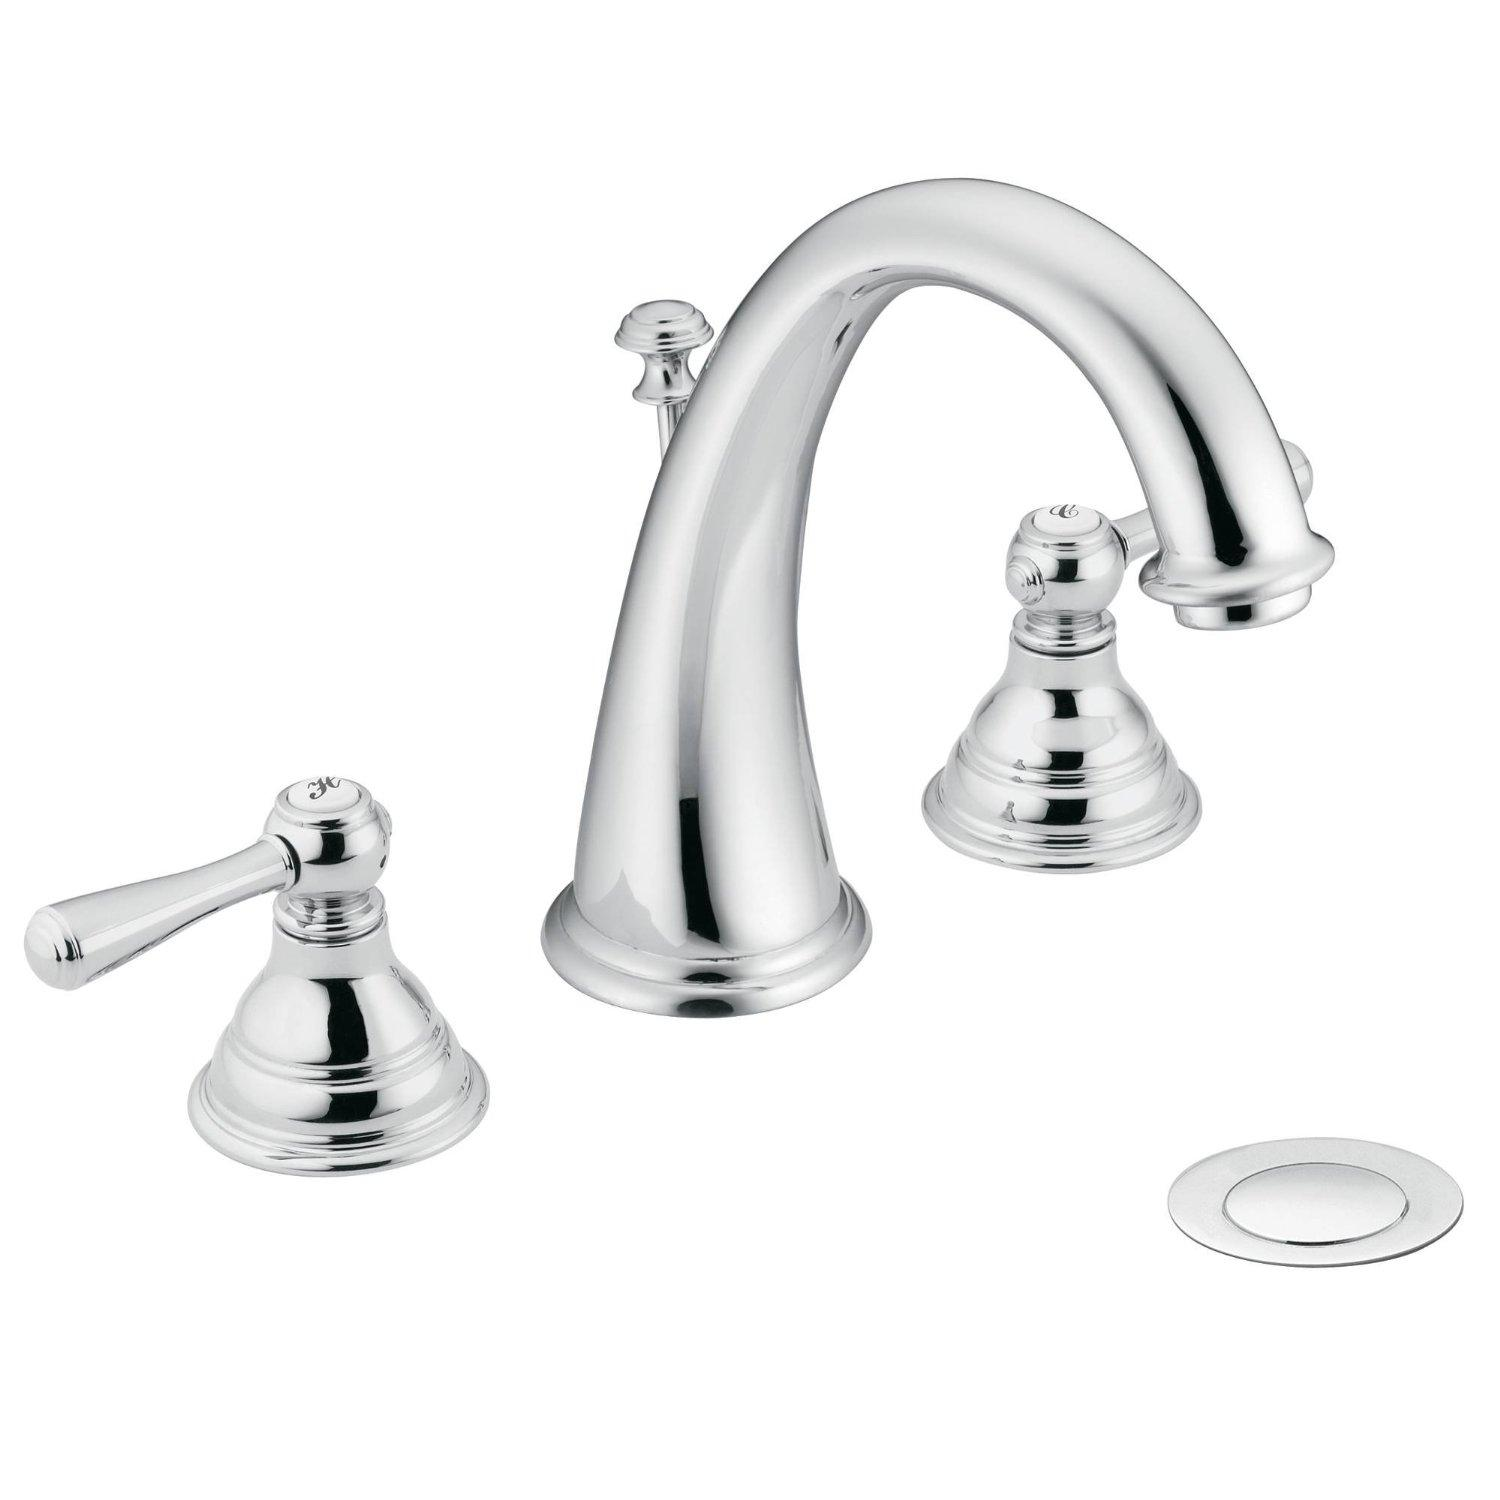 Moen T6125 Kingsley Bathroom Faucet Chrome Touch On Bathroom Sink